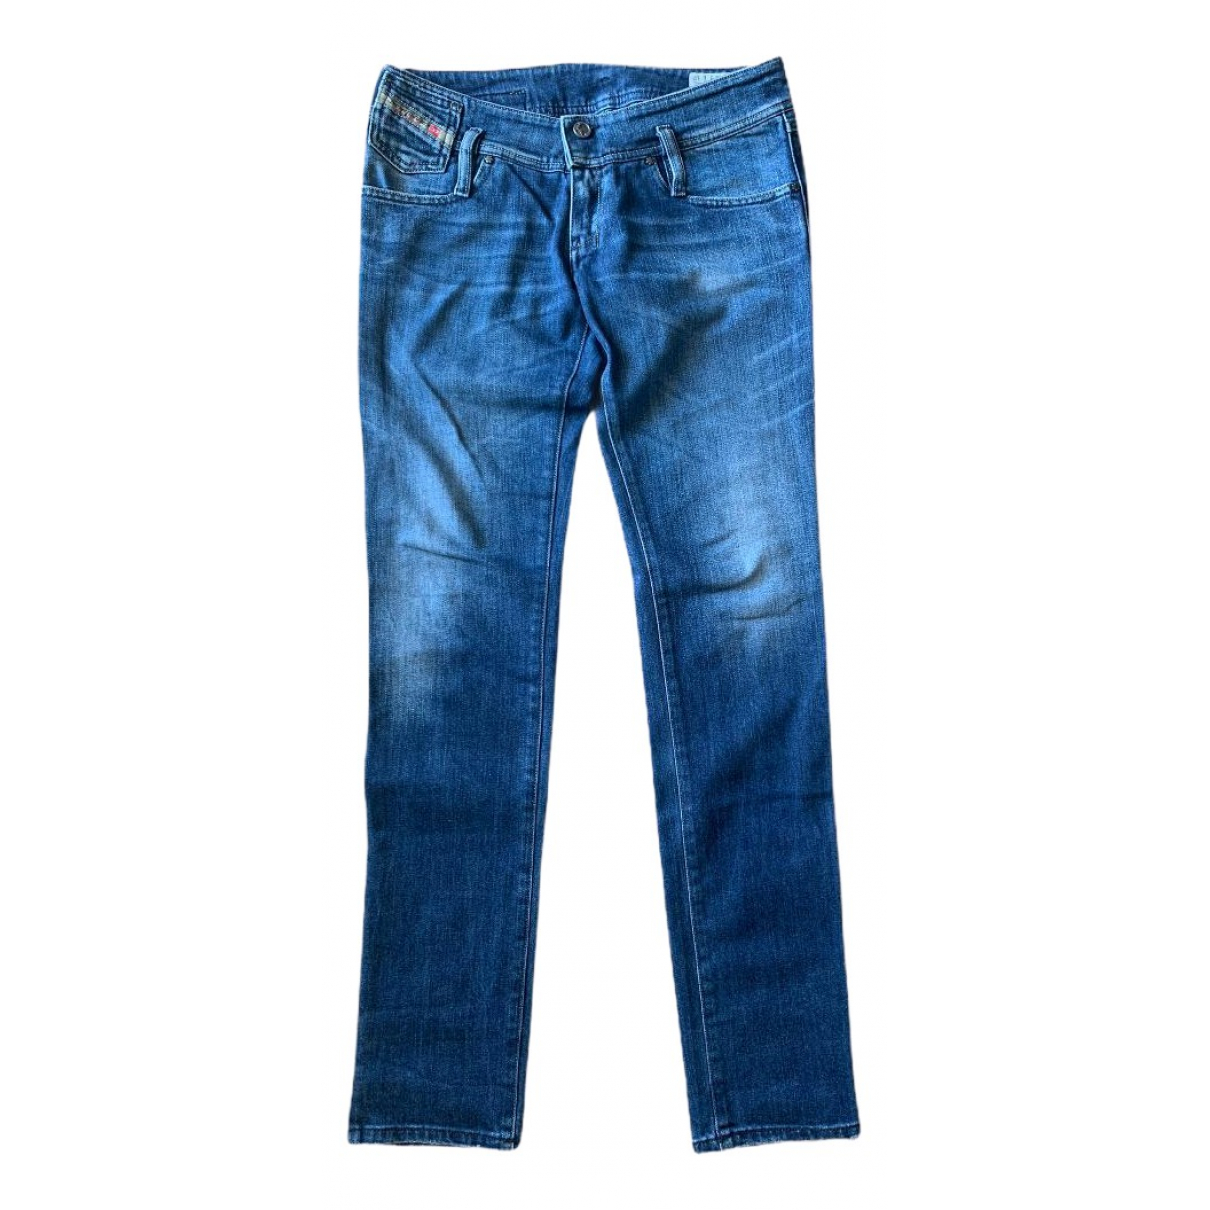 Diesel \N Blue Denim - Jeans Jeans for Women 29 US